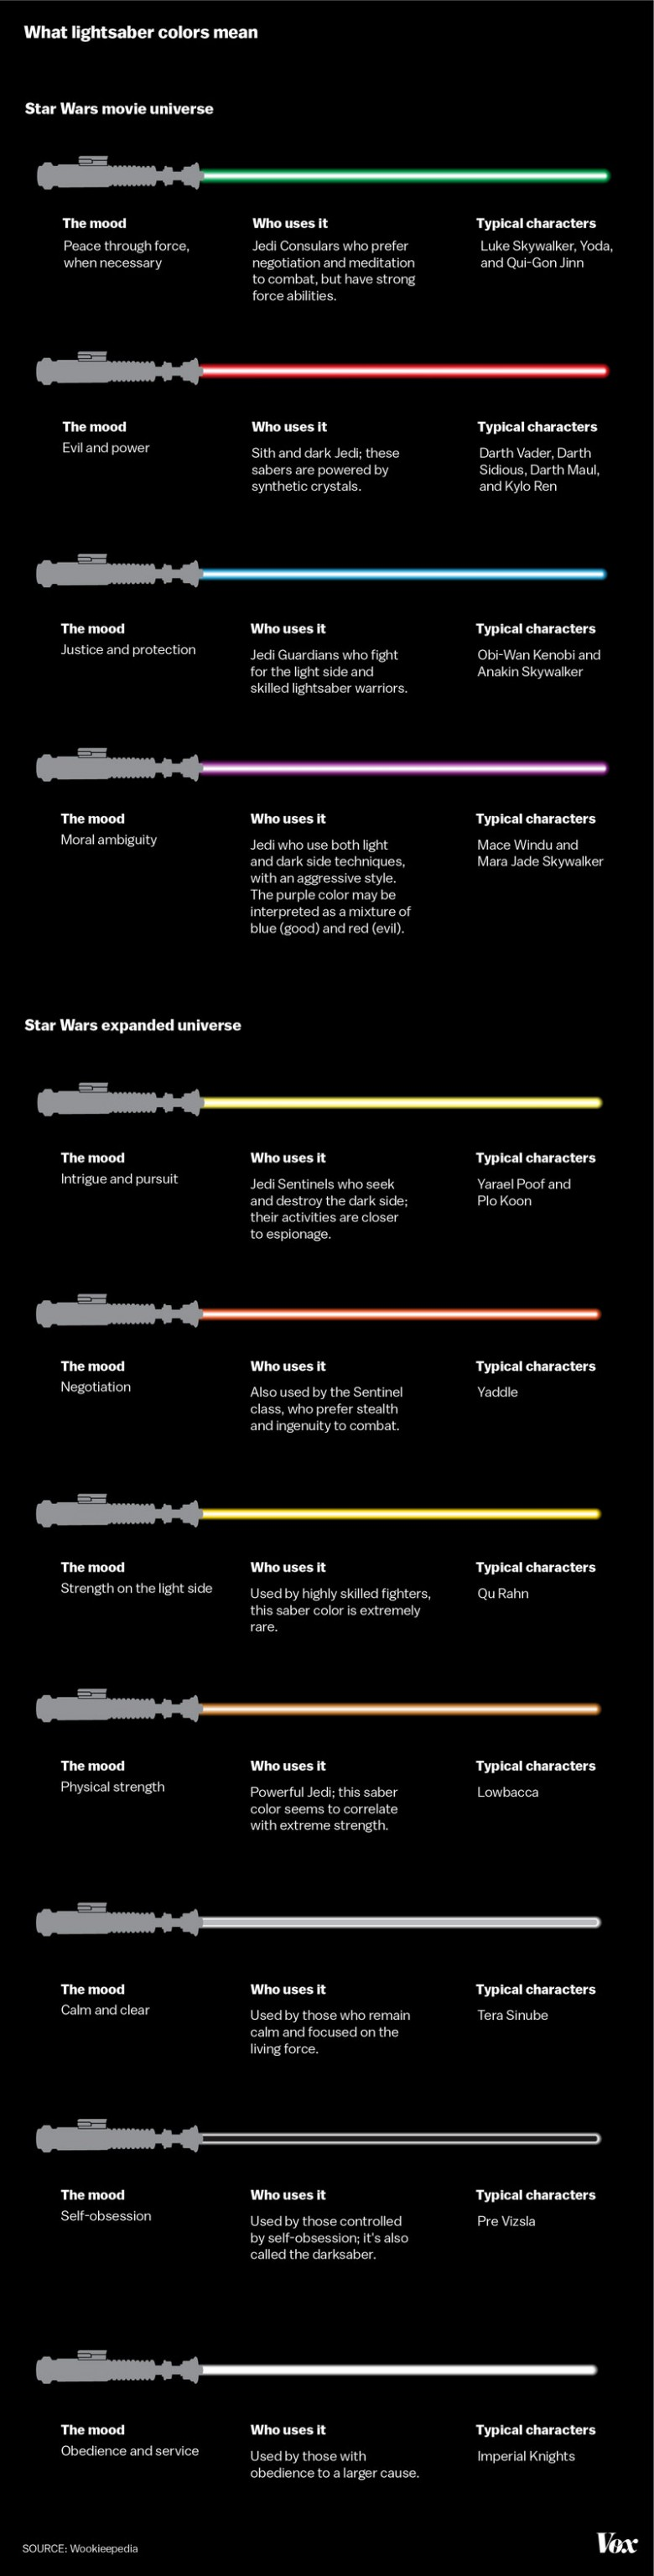 Star Wars lightsaber colors